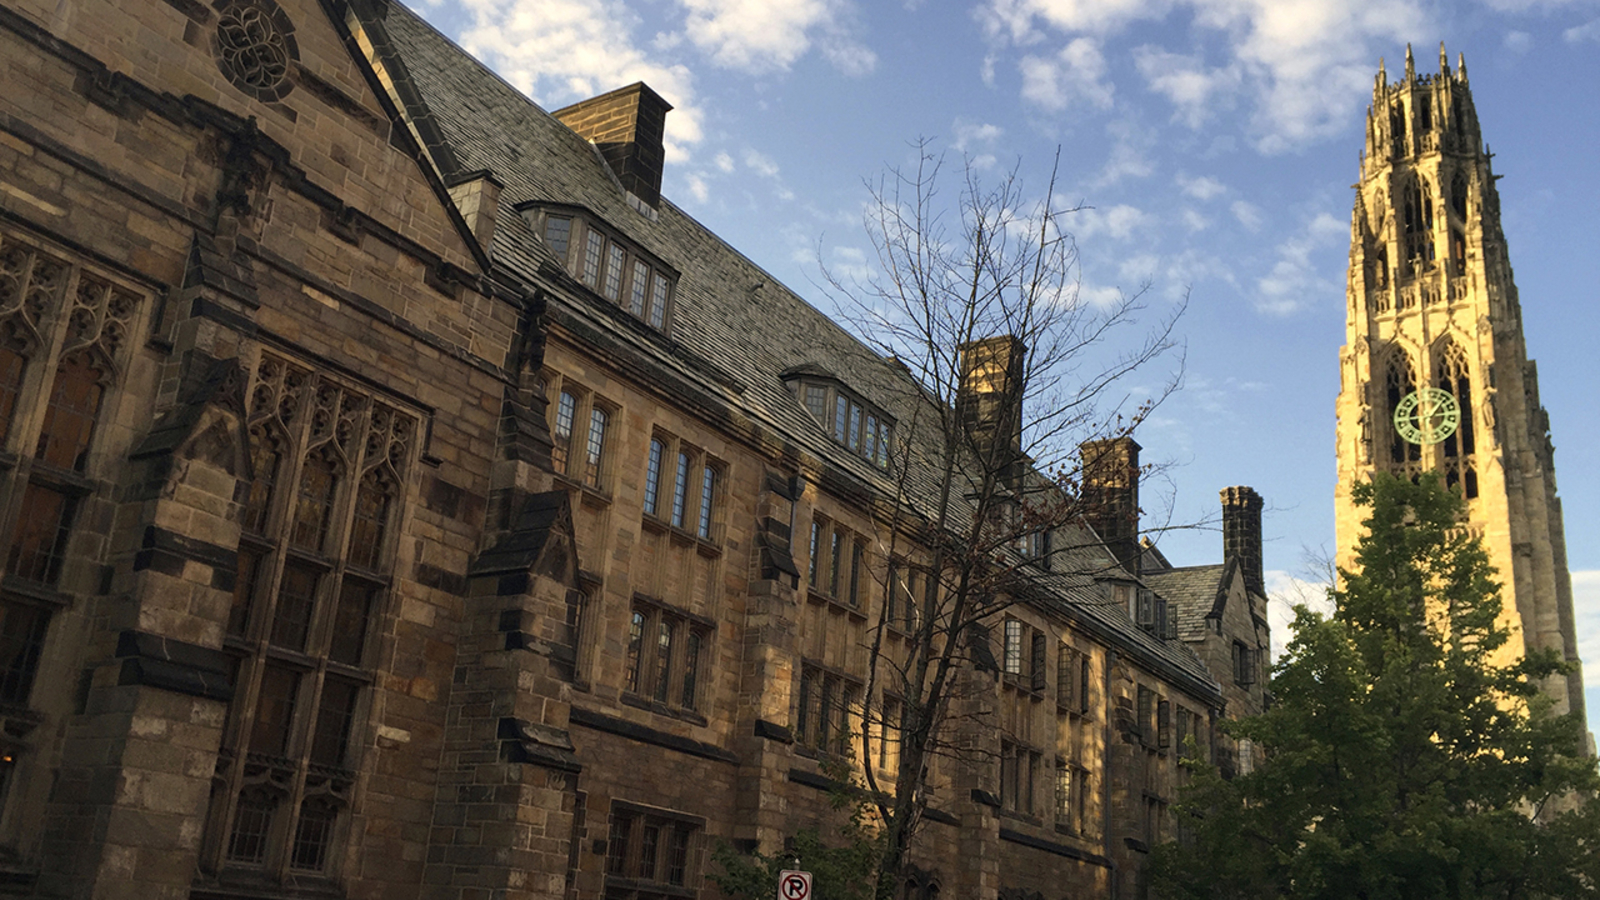 abc11.com: DOJ accuses Yale University of discriminating against Asian, white applicants